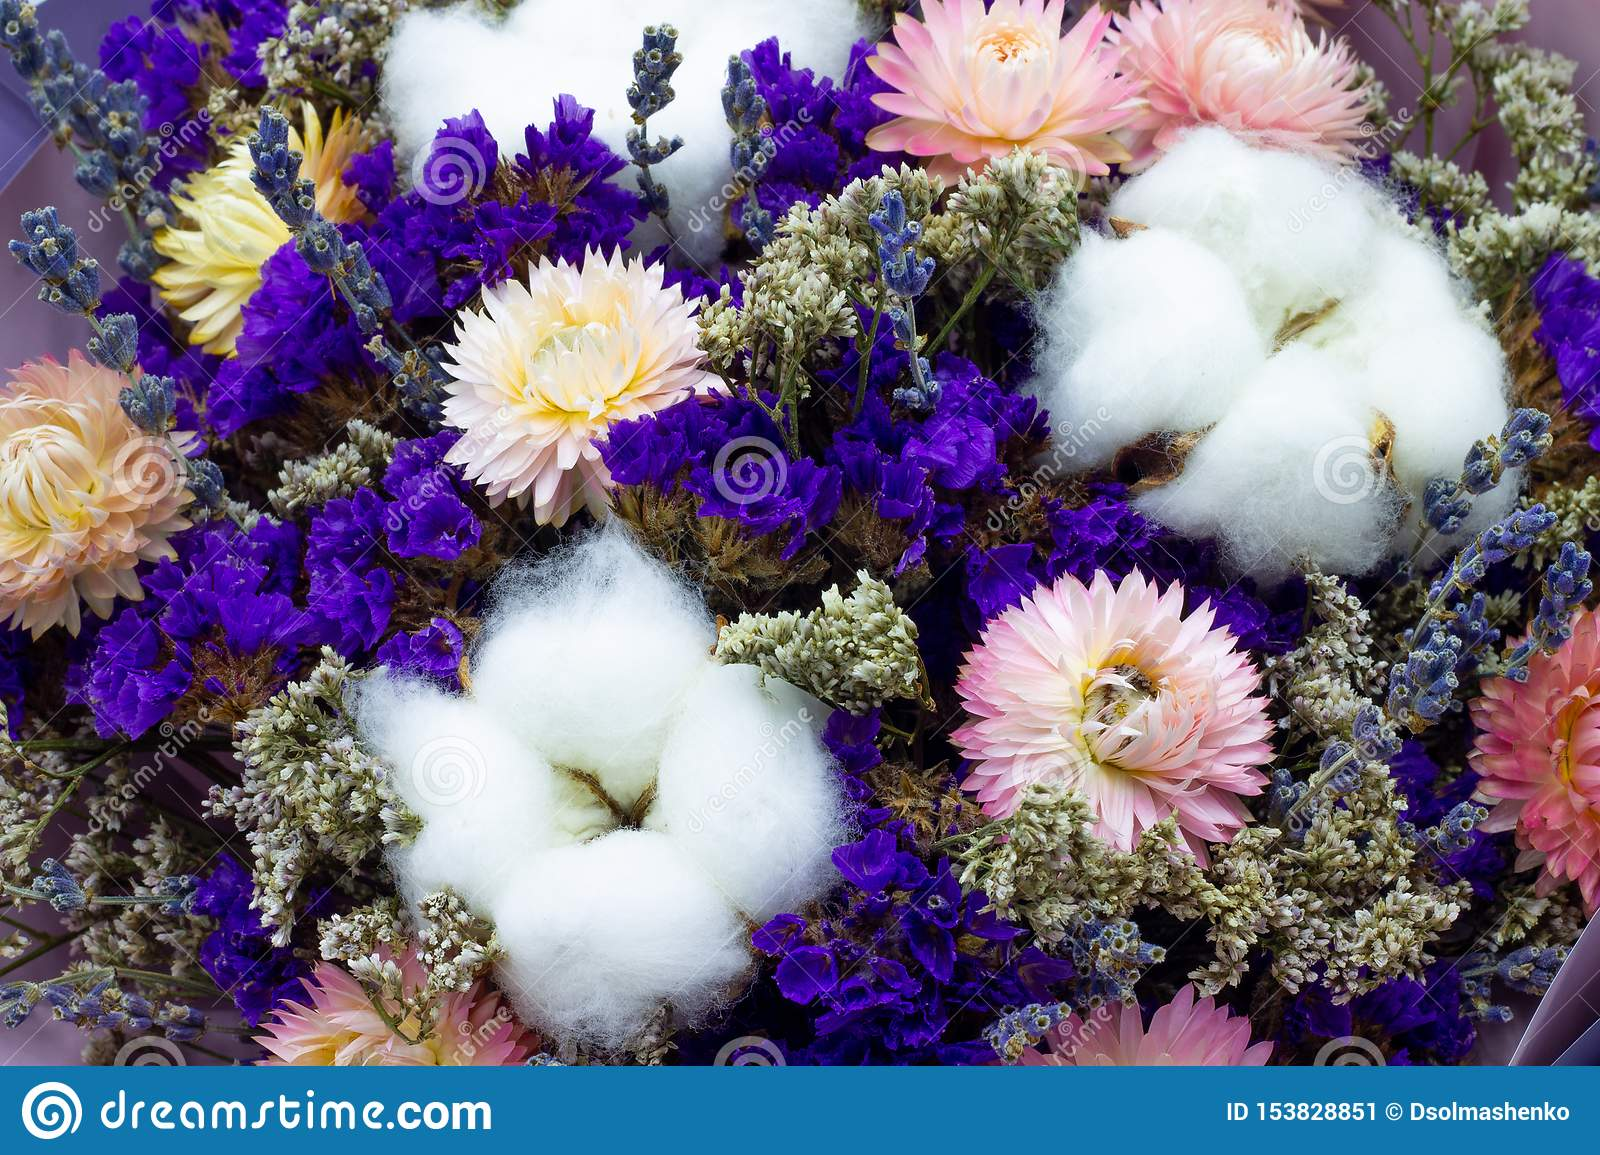 Bouquet of dried flowers with cotton and lavender floral background